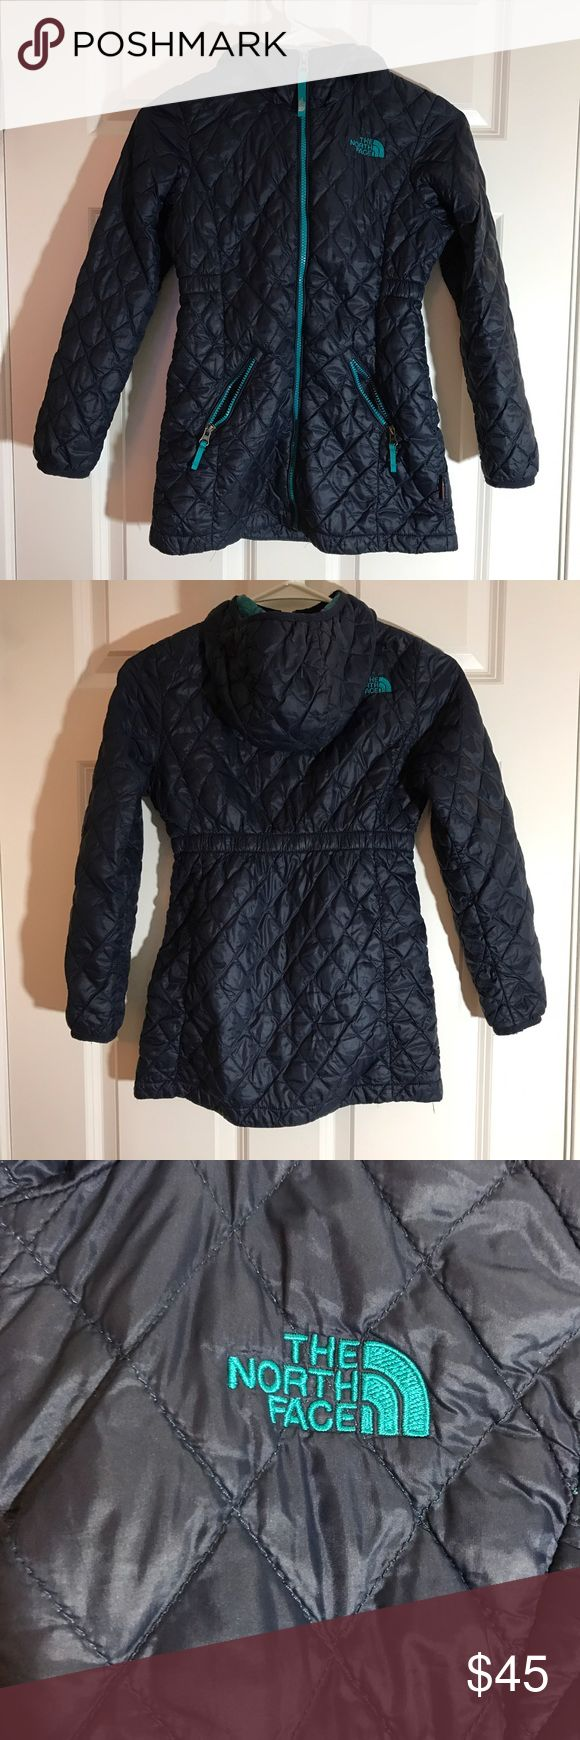 """Girls North face puffer jacket with hood Dark blue puffer jacket with hood. The inside is a beautiful teal color. This jacket is a must have for fall! The size is S/P or a 7/8. The pit to pit is 16"""". North Face Jackets & Coats Puffers"""